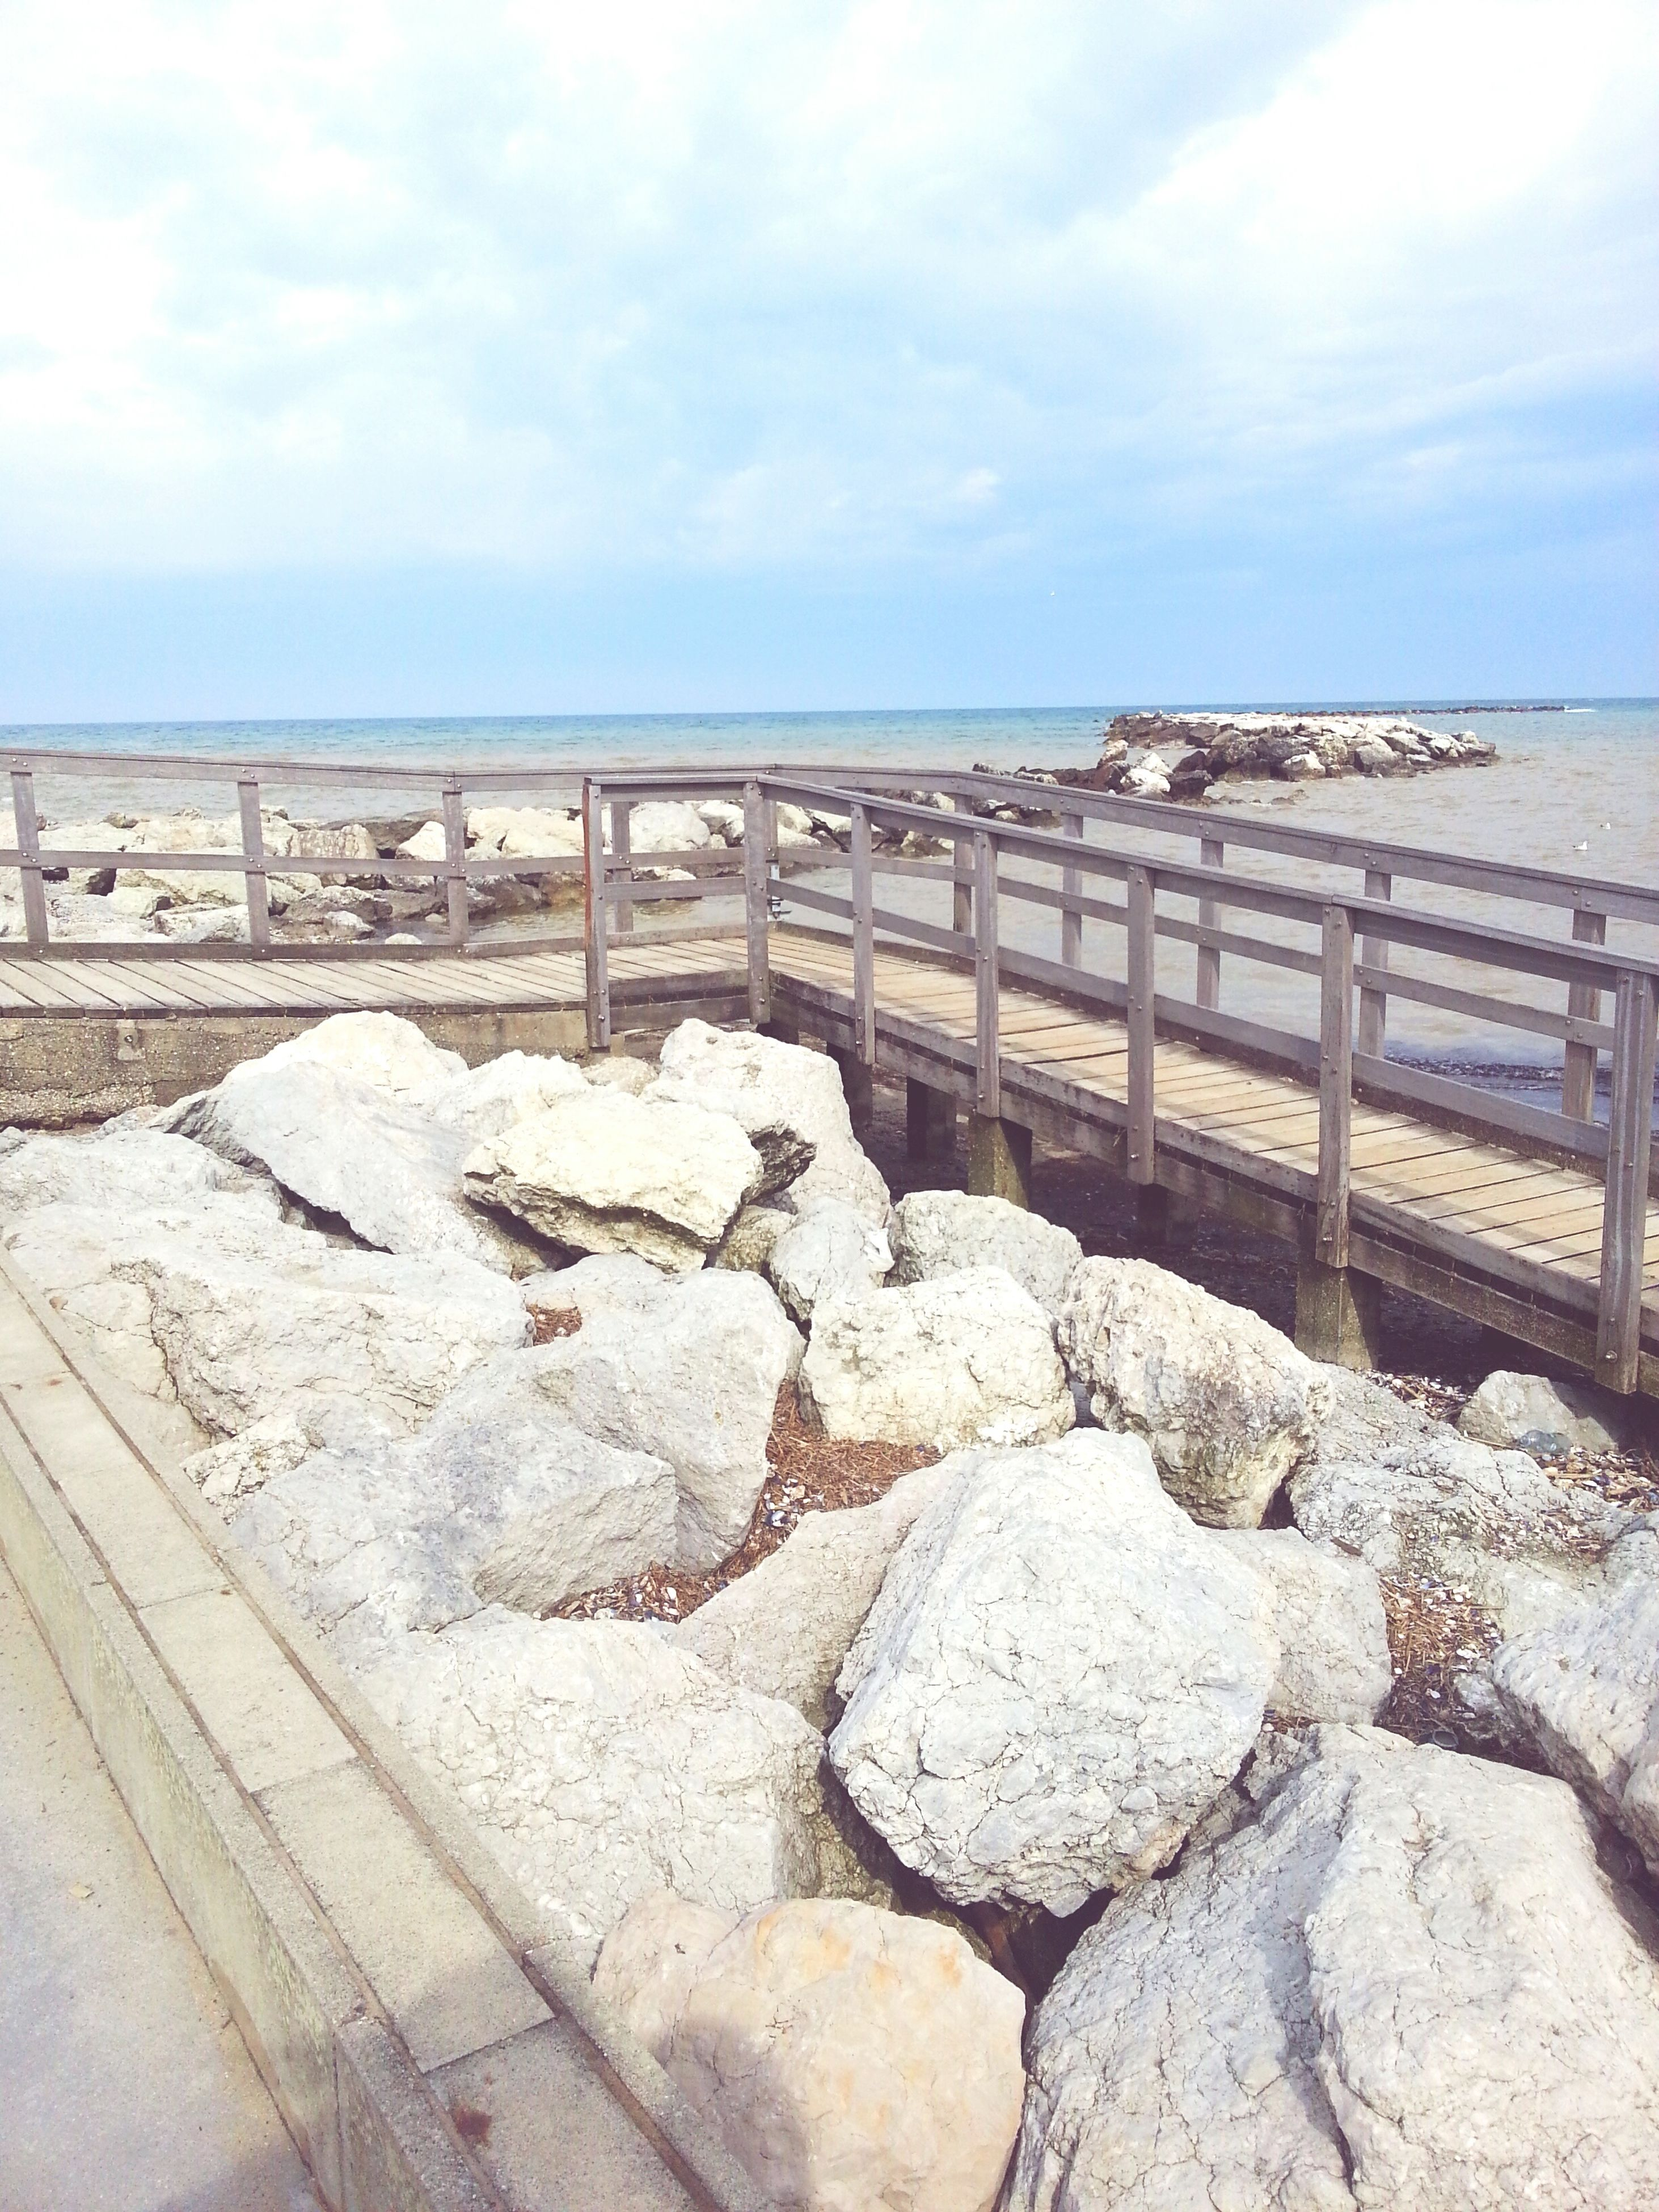 sky, cloud - sky, sea, railing, built structure, beach, water, cloud, day, nature, architecture, rock - object, tranquility, stone - object, horizon over water, tranquil scene, cloudy, outdoors, shore, scenics